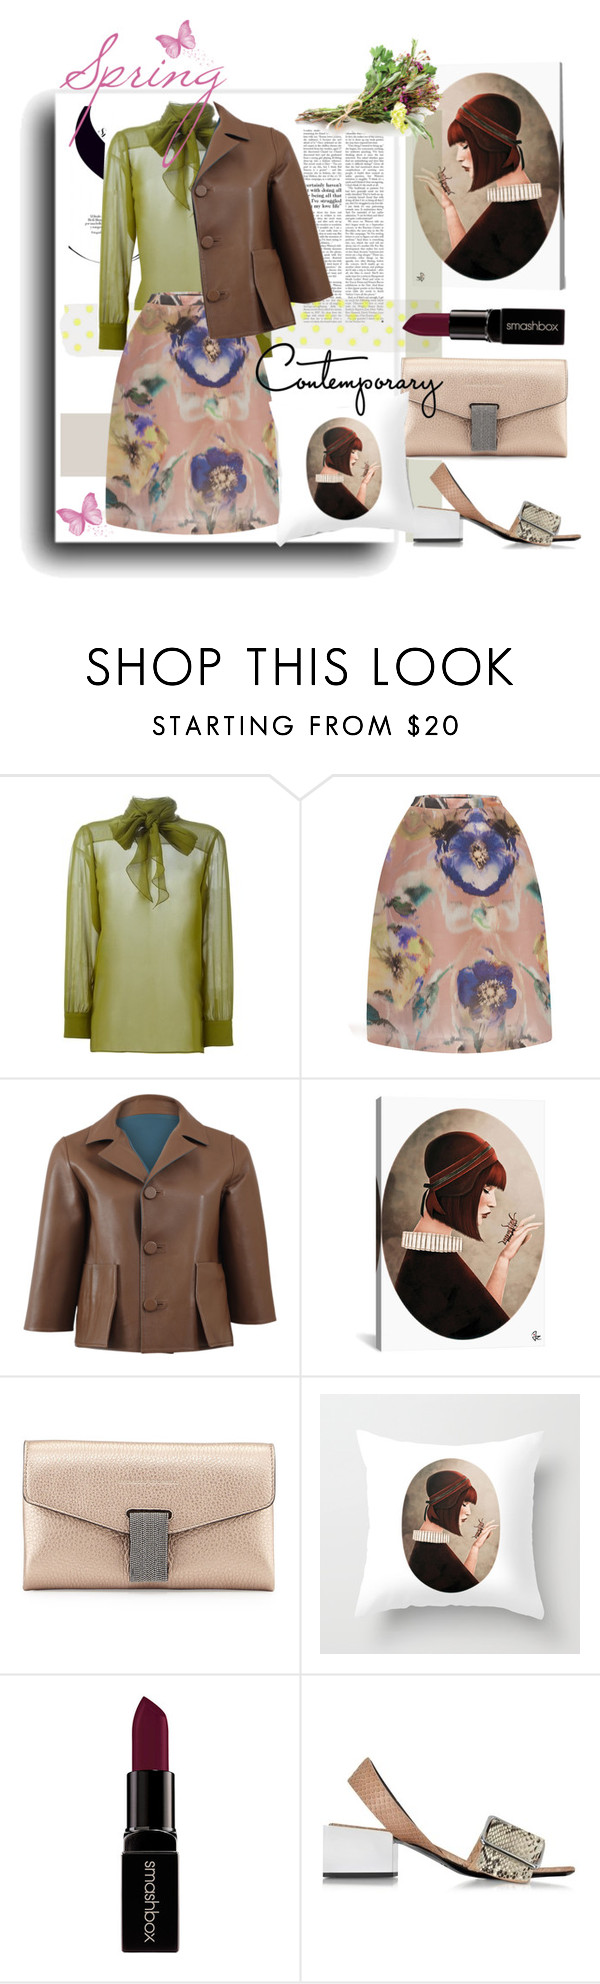 """March 19"" by anny951 ❤ liked on Polyvore featuring Gucci, Marni, Brunello Cucinelli, Smashbox and Jil Sander"